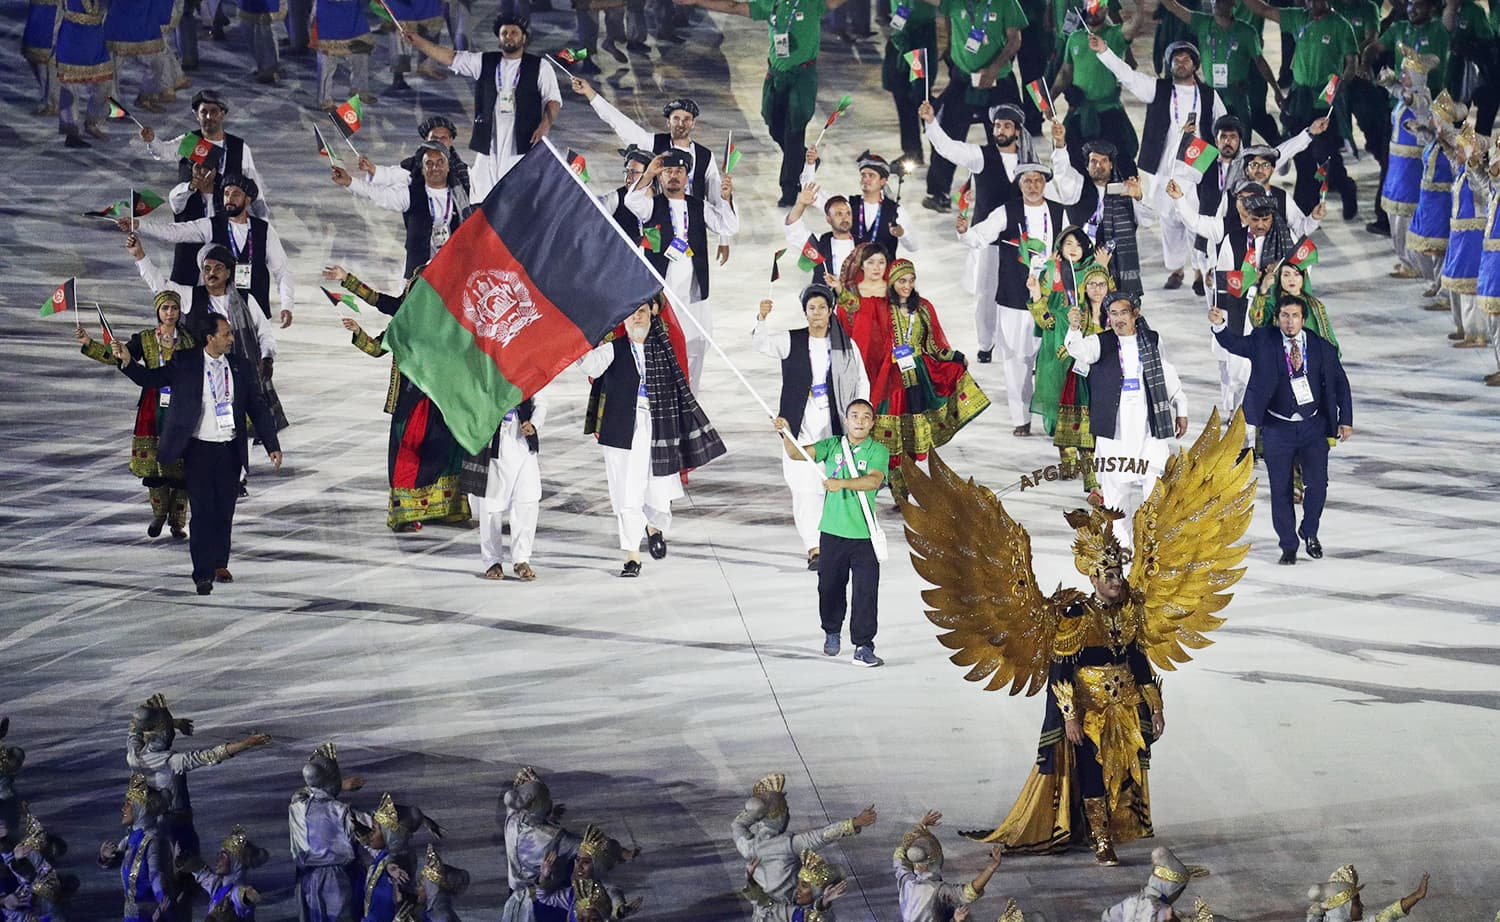 The Afghanistan team marches in during the opening ceremony. —AP